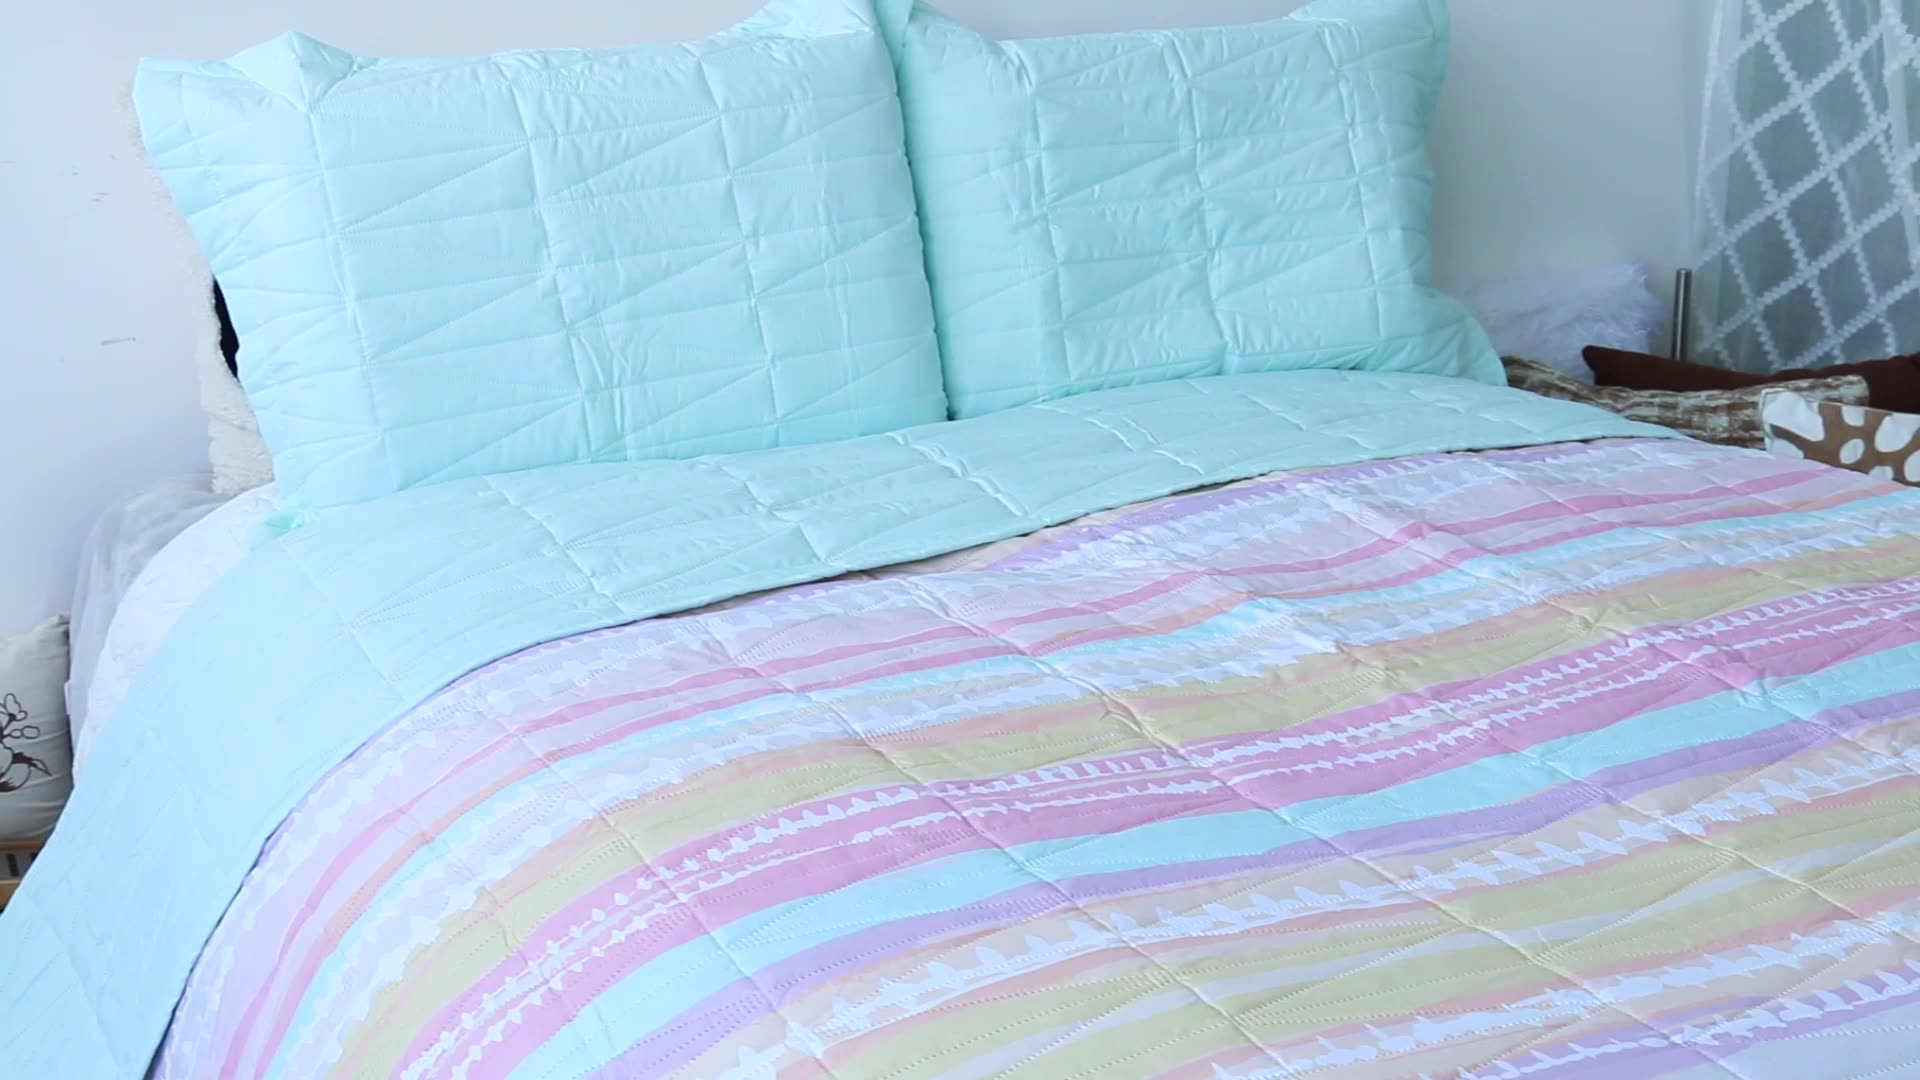 QUEEN SIZE LOLA MAIS NOVO COLORIDO IMPRIMIR DISPERSAR PINSOINC ULTRA MACIO COLCHA 3PC SET